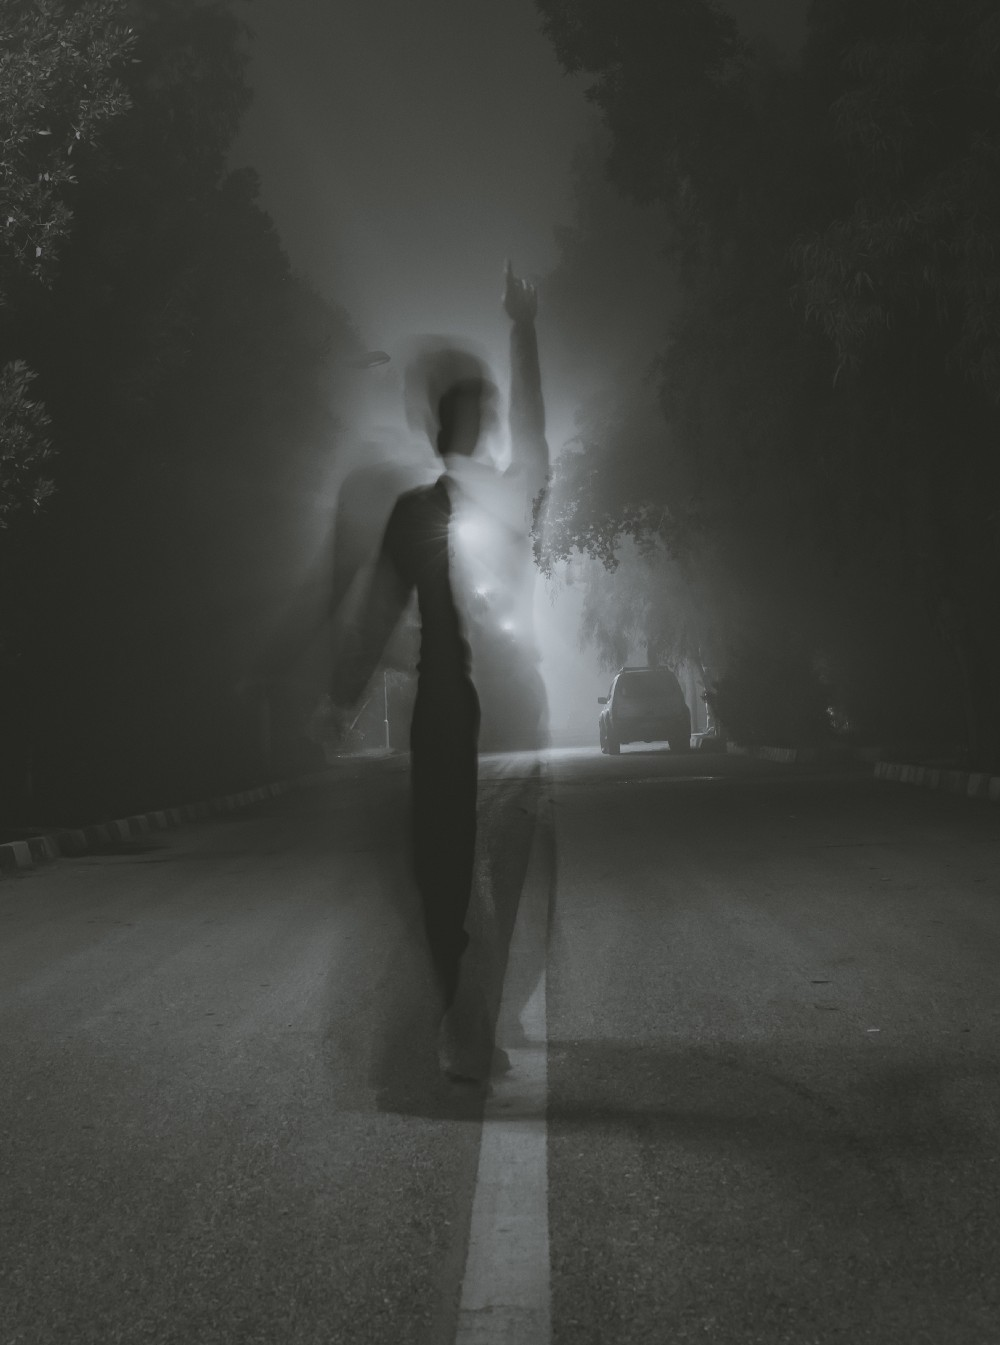 Shadowed person on a road in fog with one arm lifted. In the background, a car driving away.